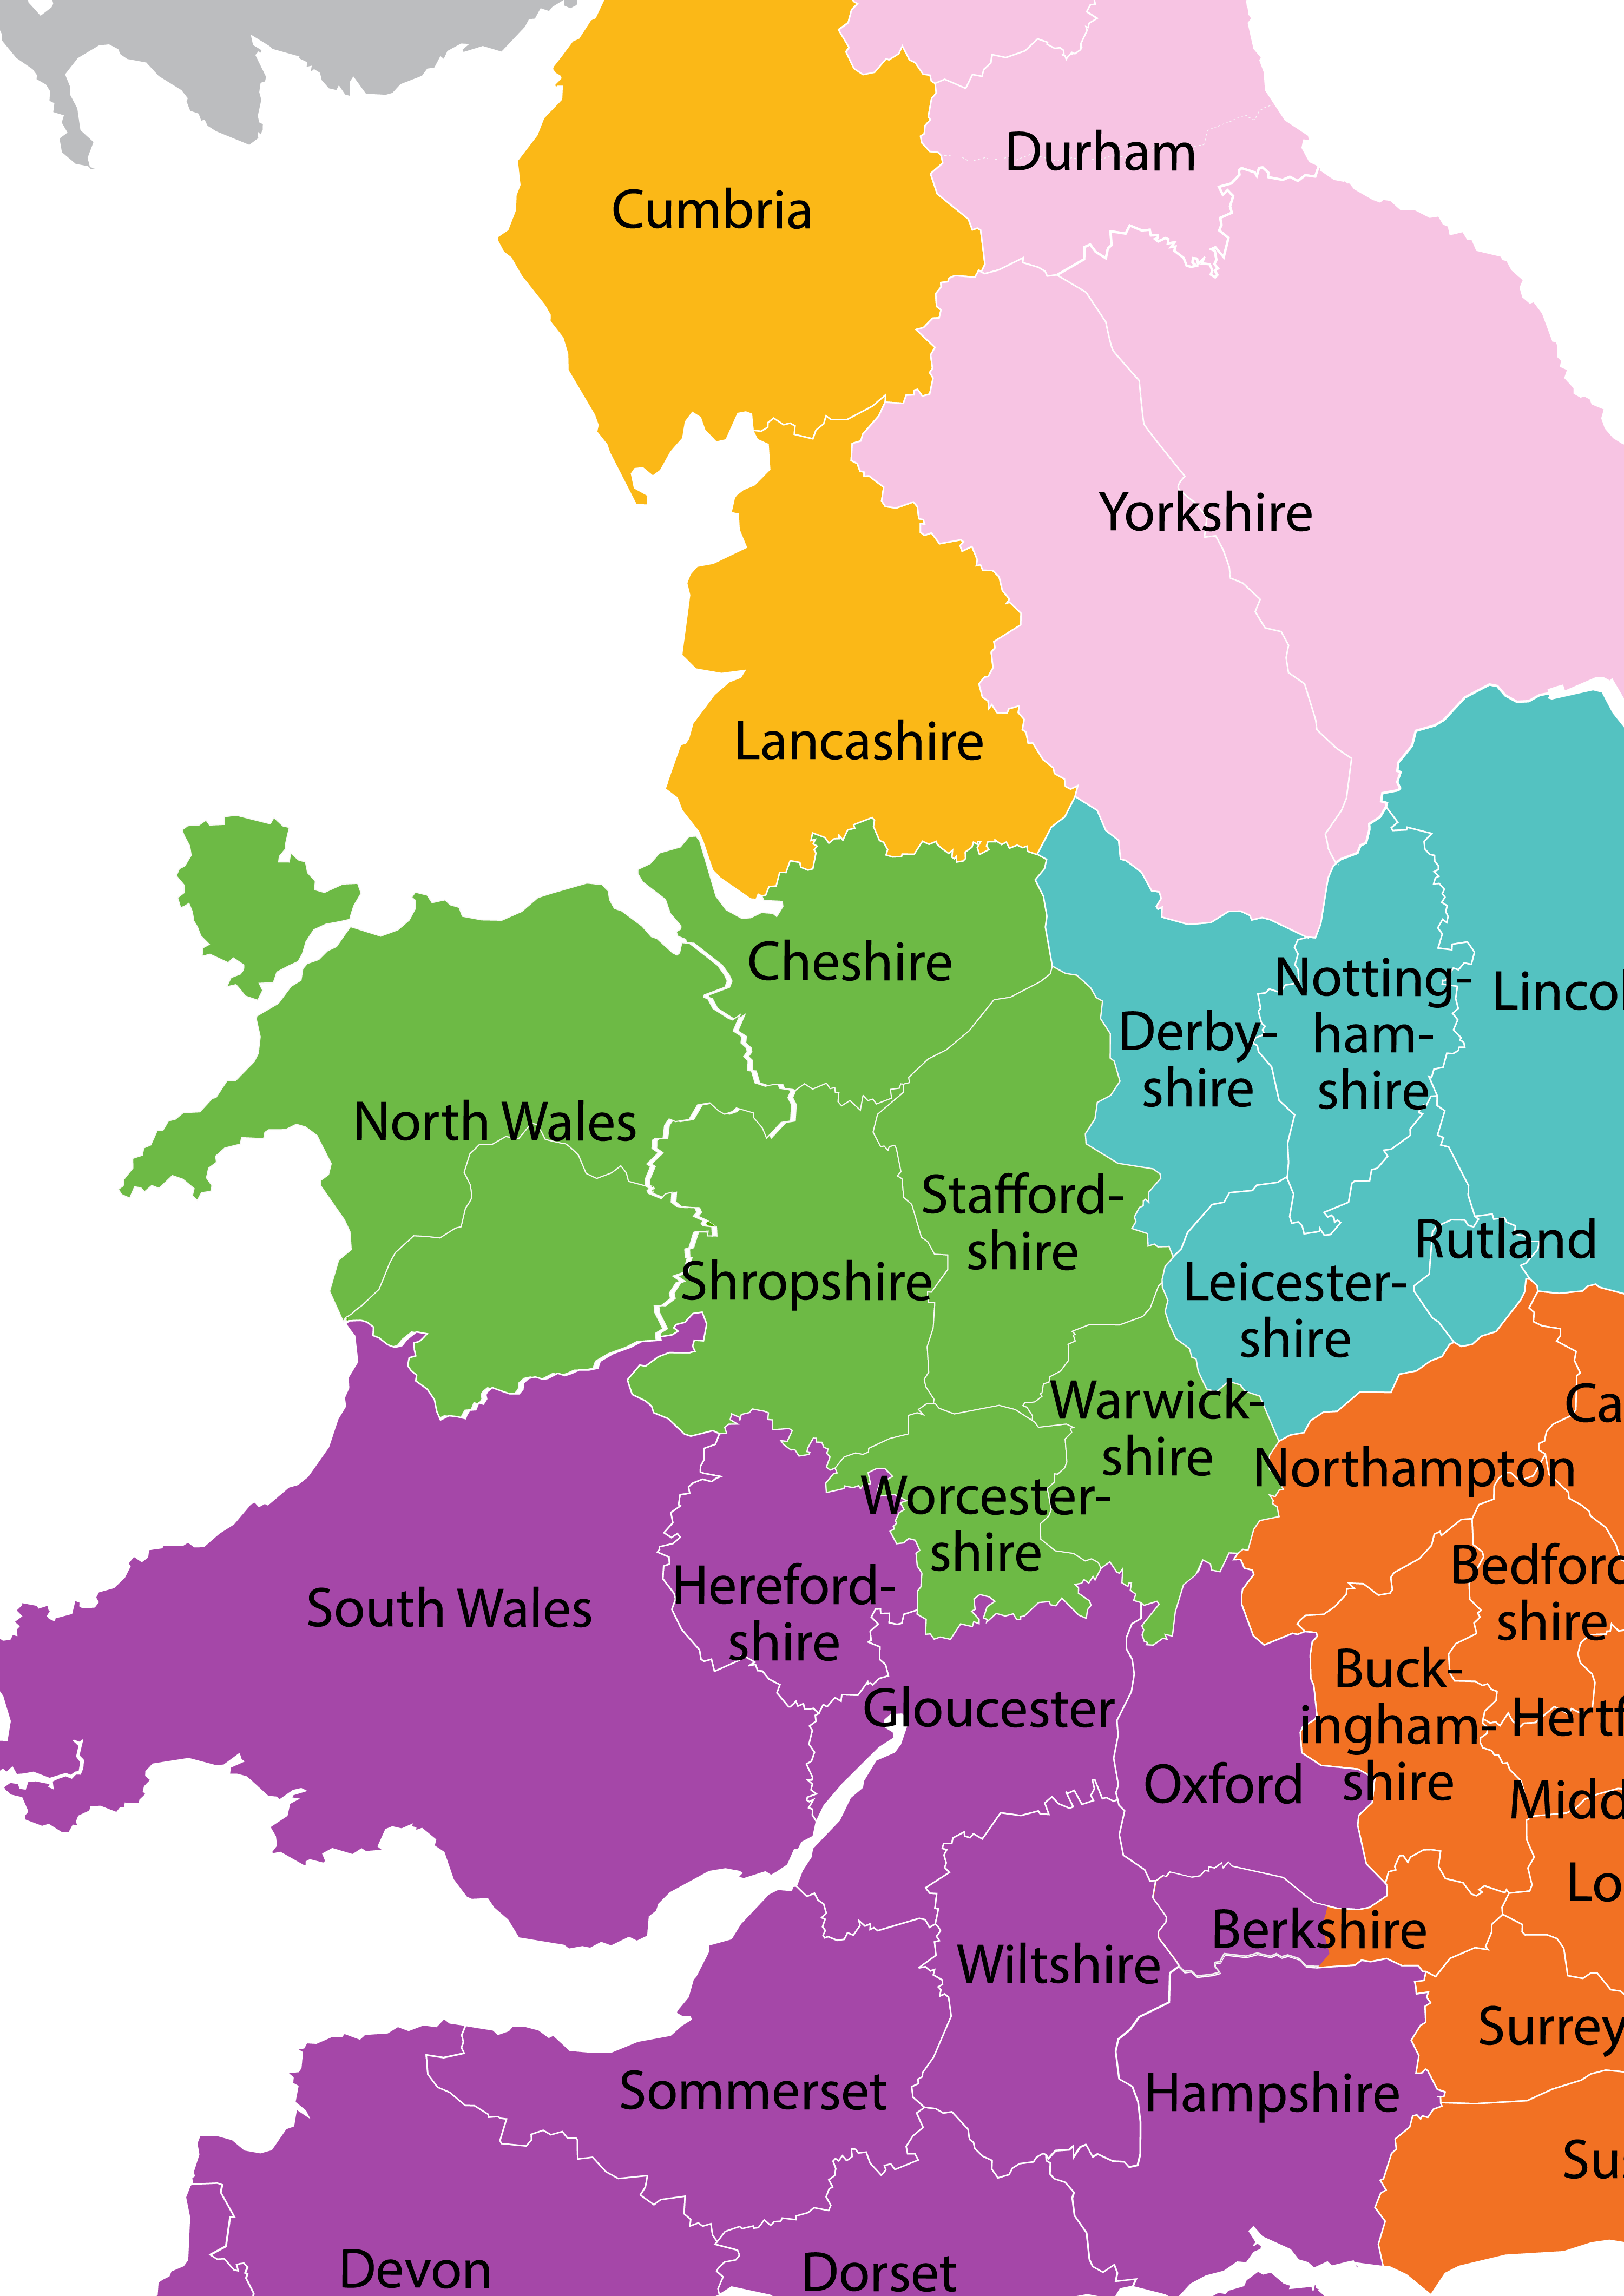 UK location map